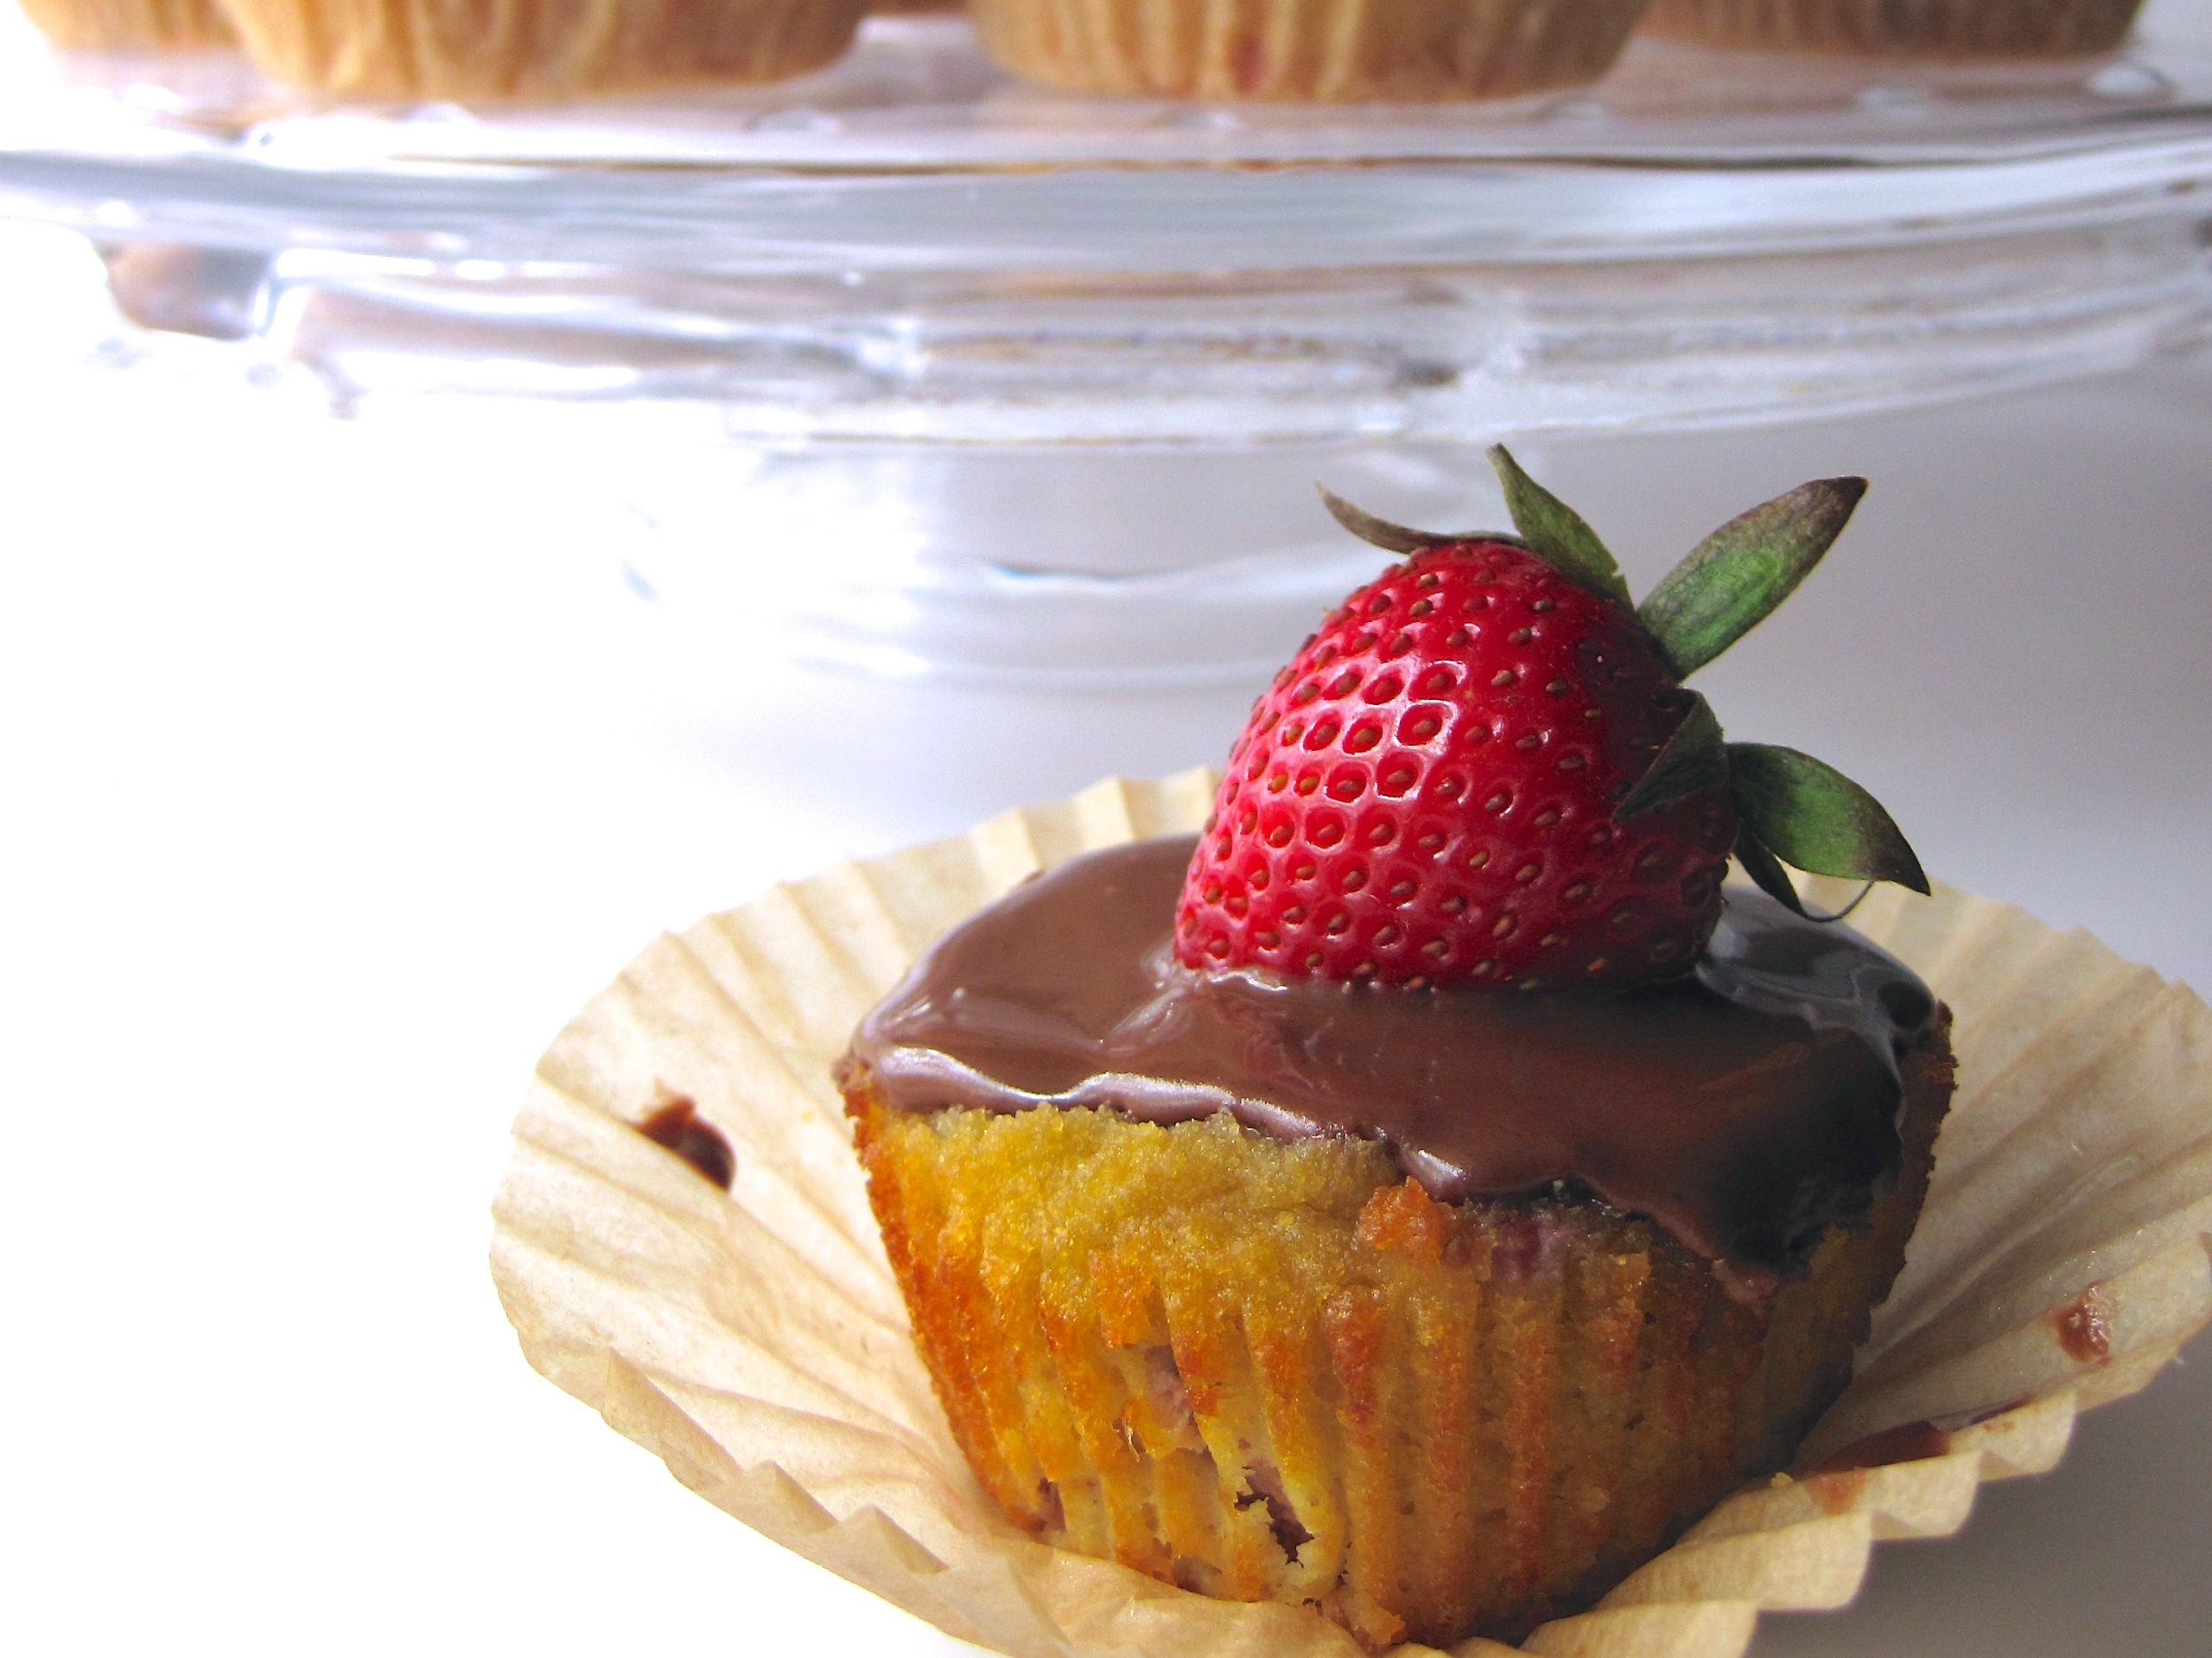 Strawberry Cupcakes with Simple Chocolate Frosting